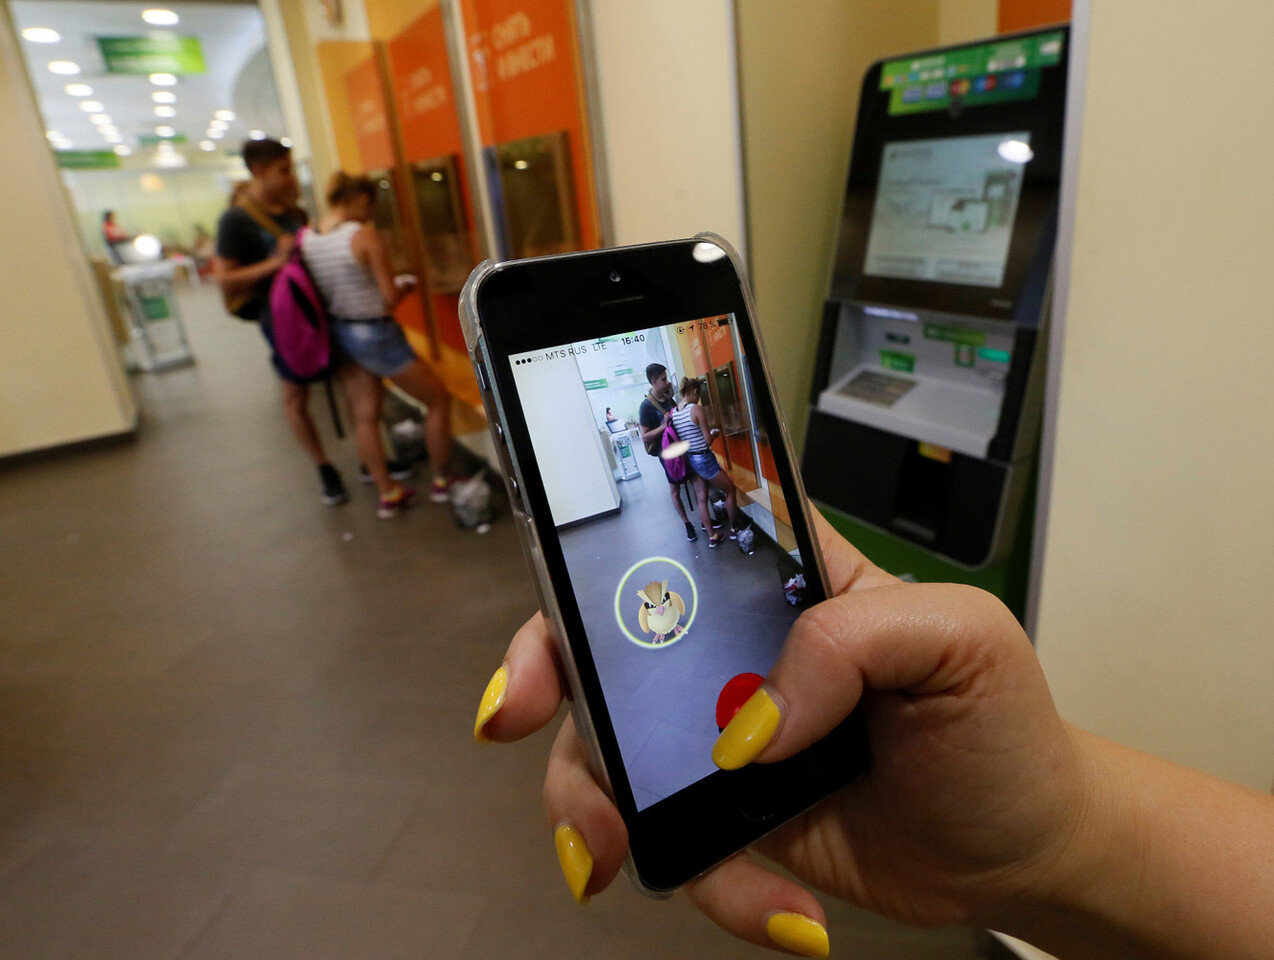 """A woman plays the augmented reality mobile game """"Pokemon Go"""" by Nintendo, as a visitors use an automated teller machine (ATM) at a branch of Sberbank in central Krasnoyarsk, Siberia, Russia, July 20, 2016. REUTERS/Ilya Naymushin"""